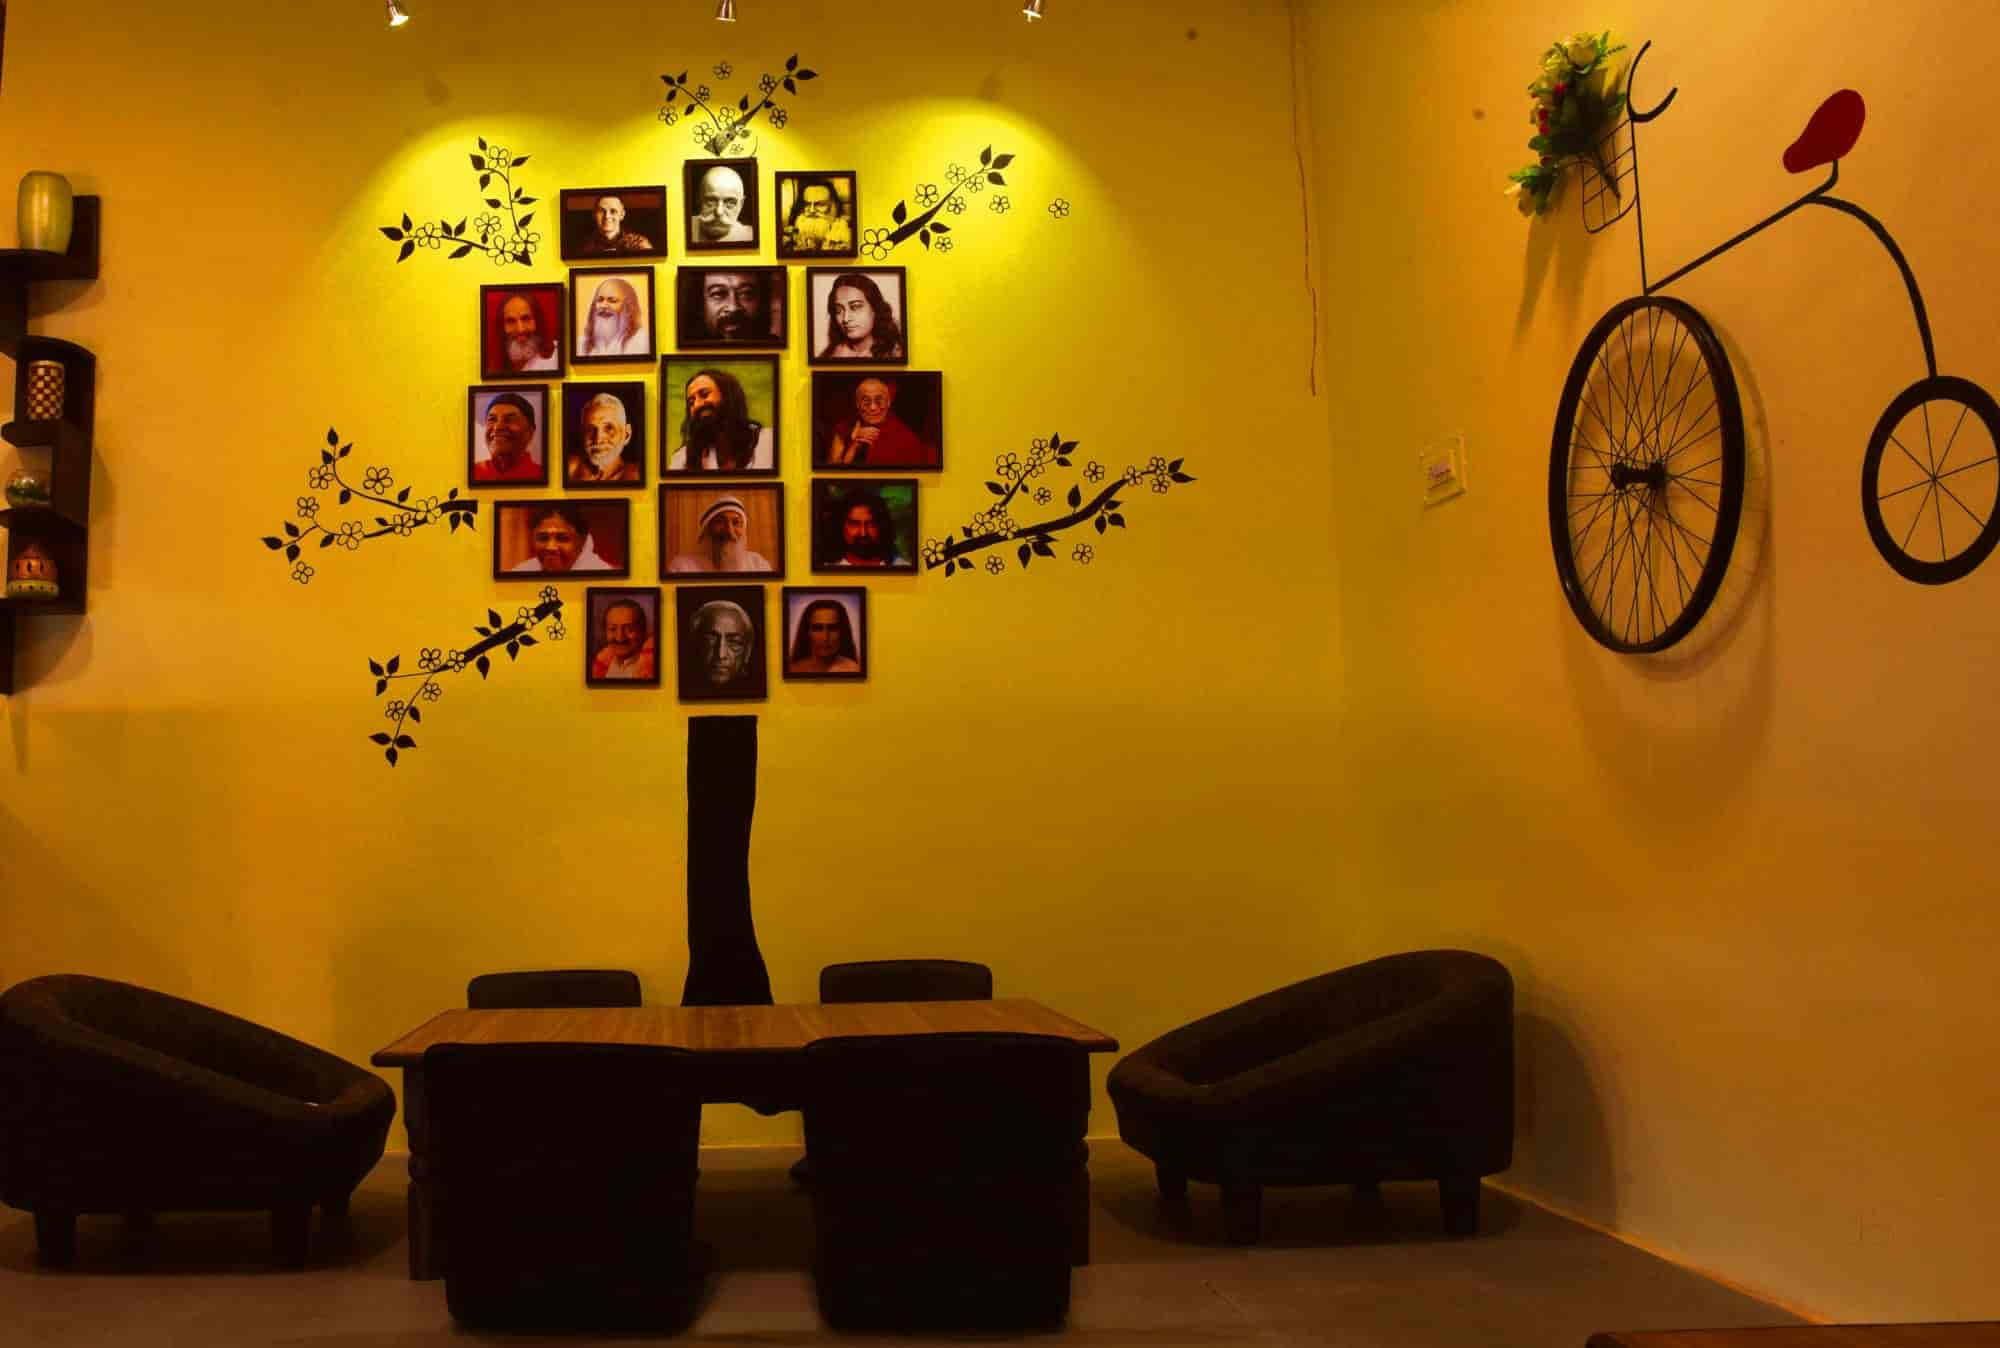 Siddhas Cafe Photos, Wanowrie, pune- Pictures & Images Gallery ...